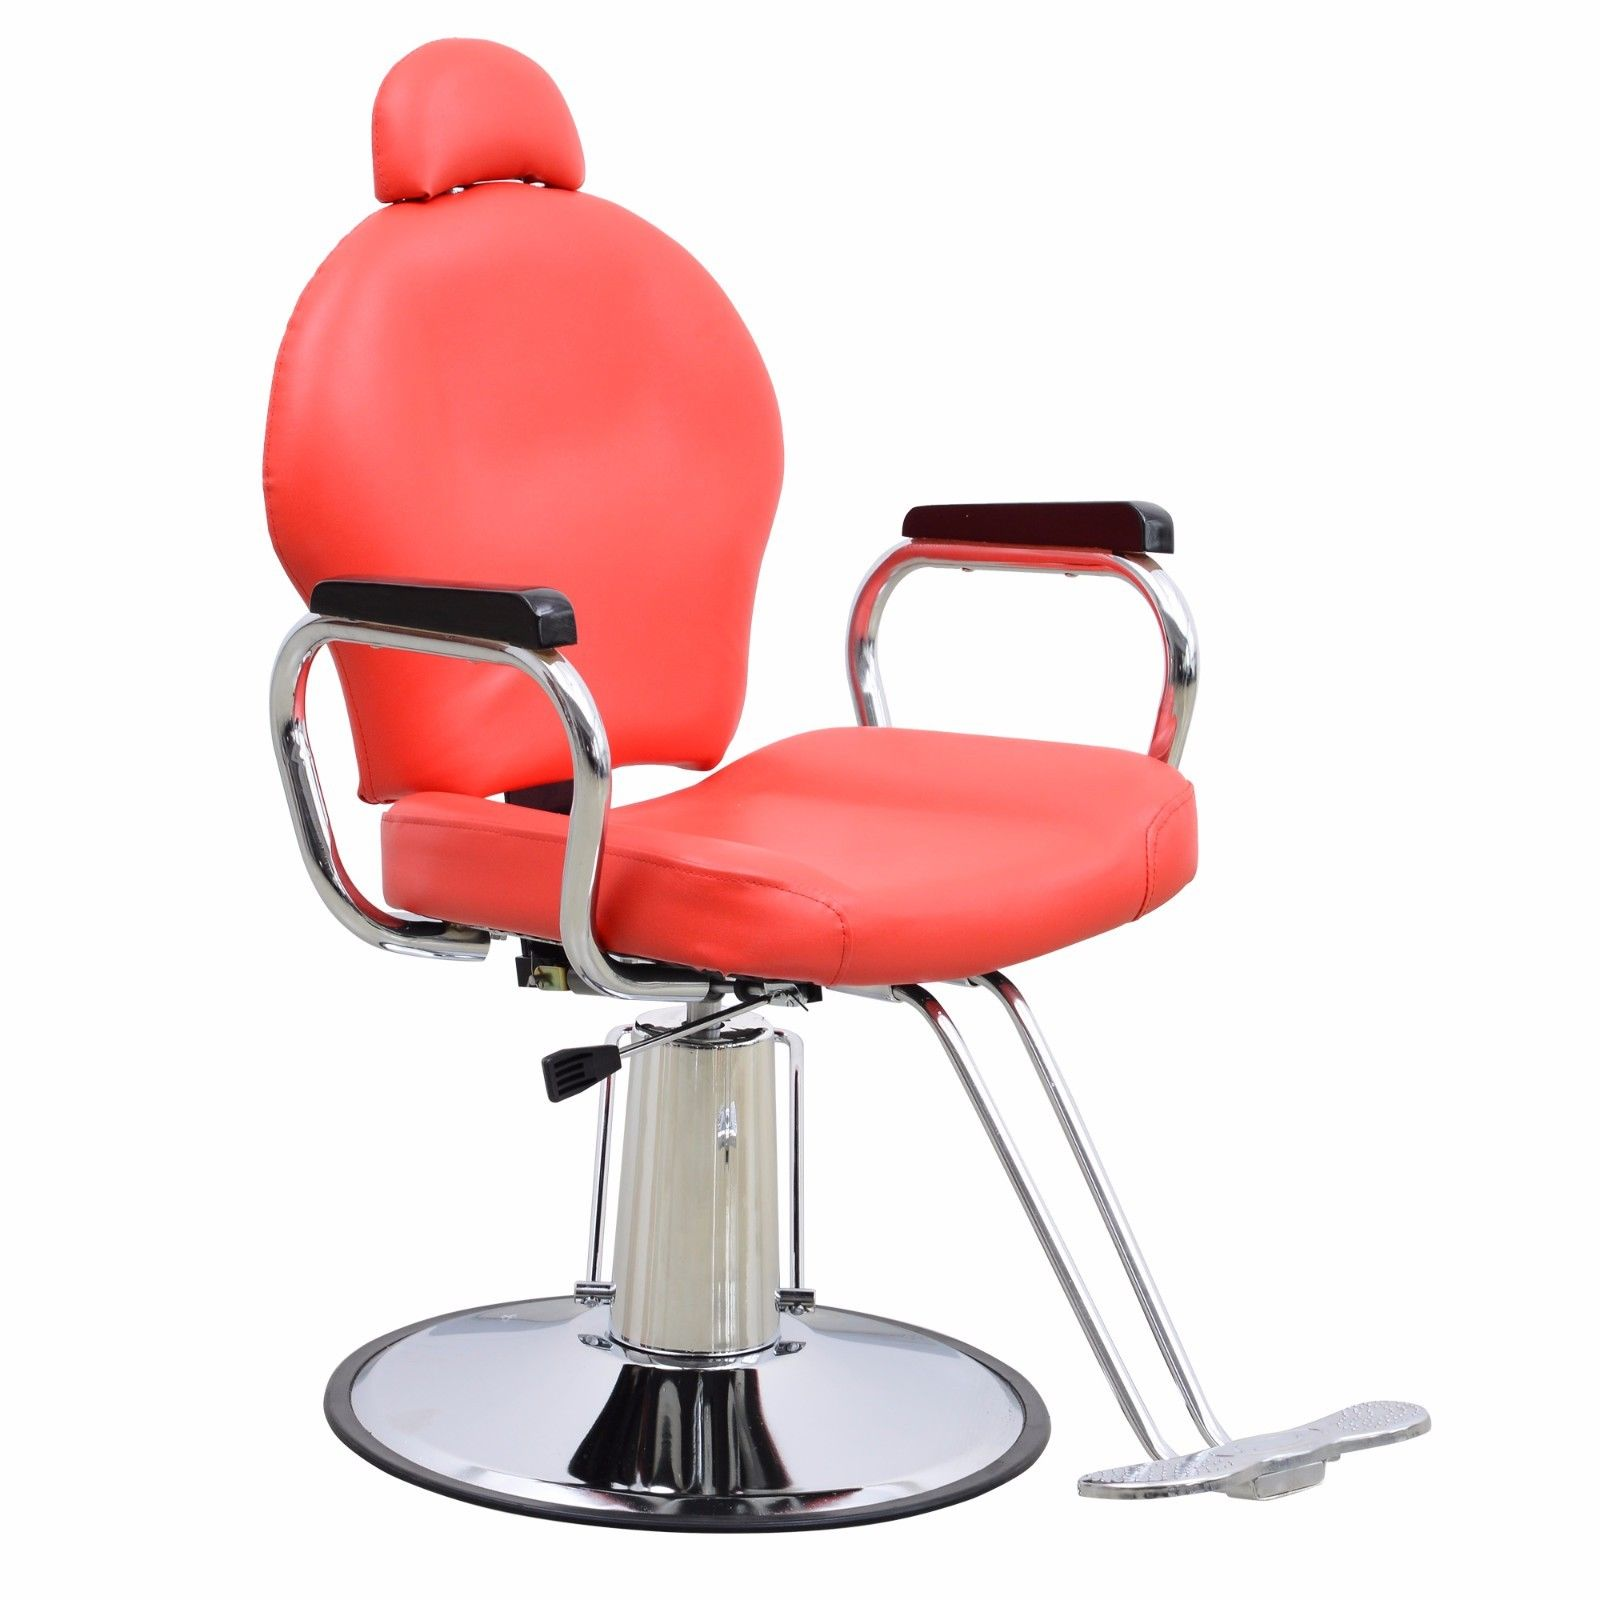 hydraulic chair for sale covers singapore reclining barber salon styling beauty spa